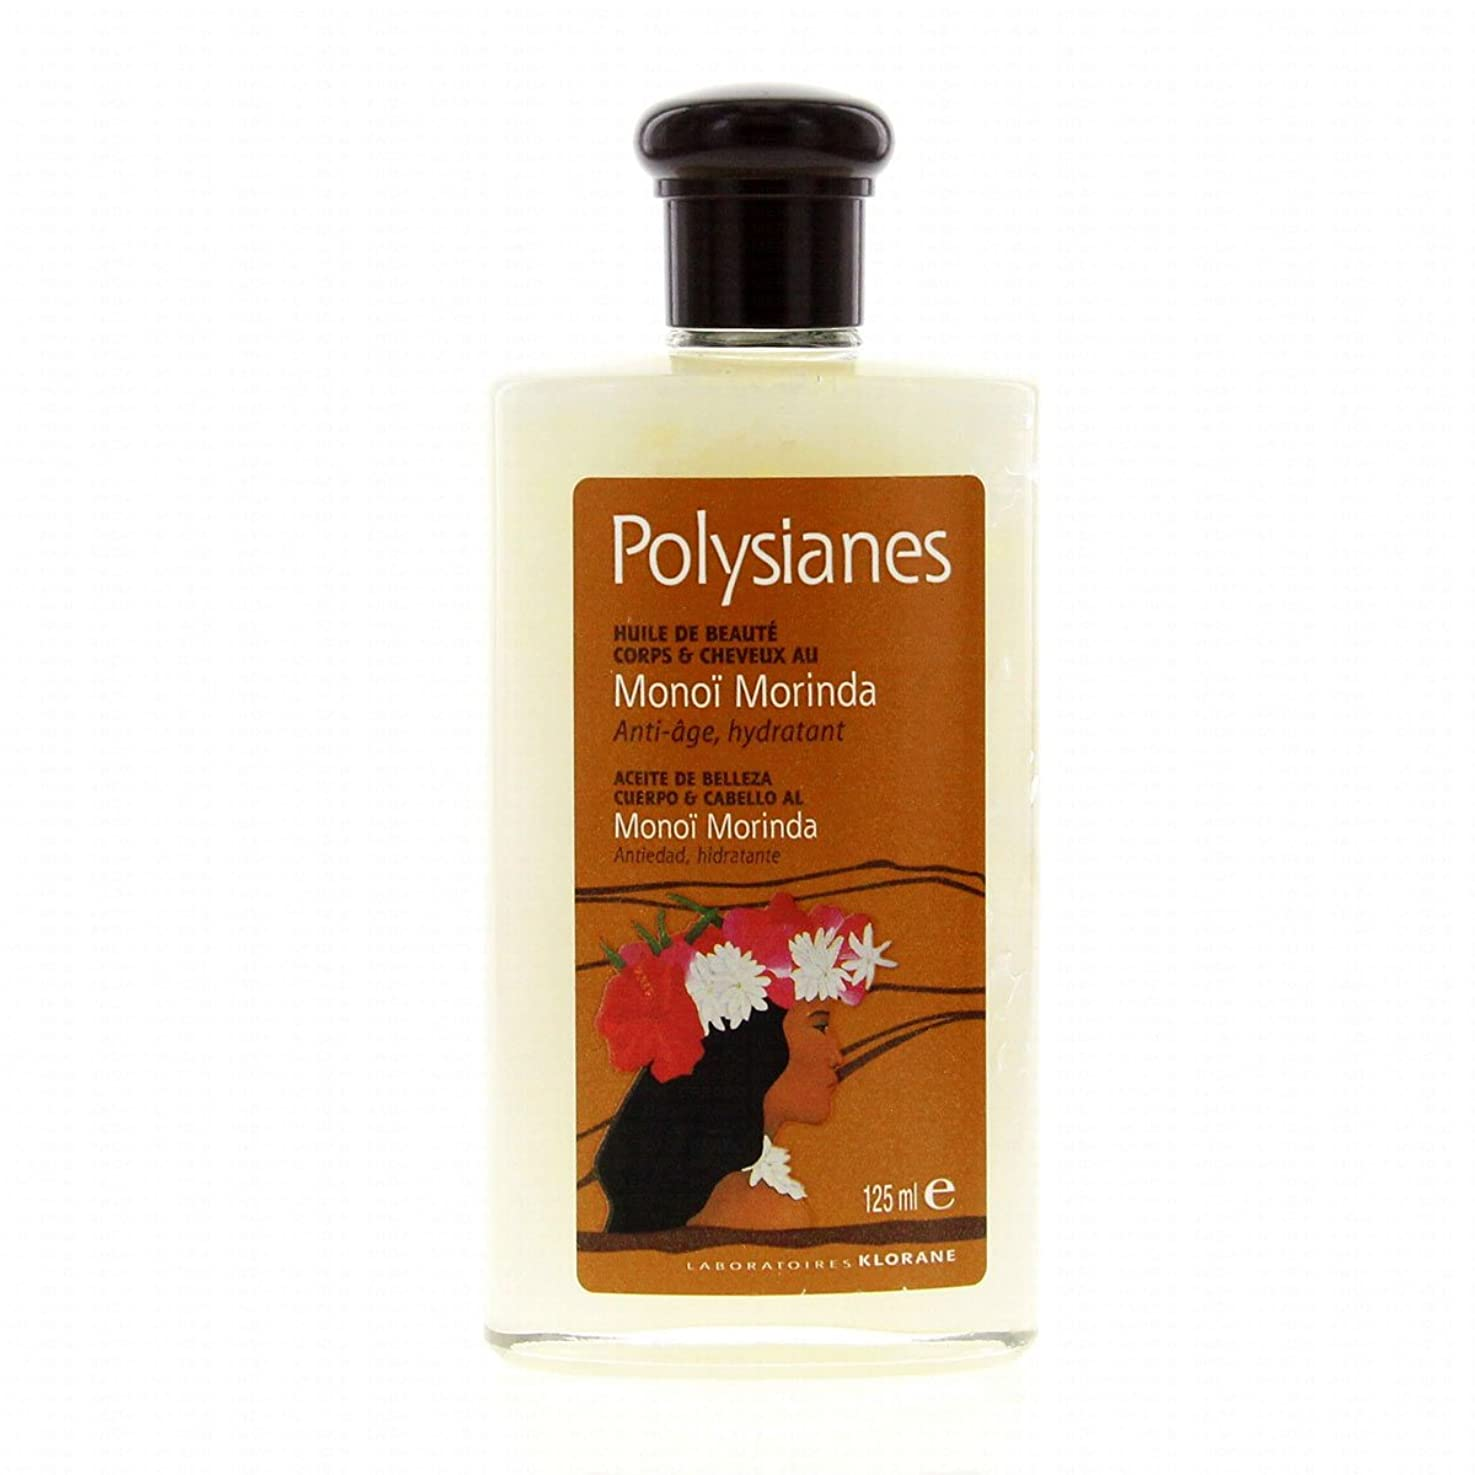 注入擬人製品Polysianes Beauty Oil With Morinda Mono Body And Hair 125ml [並行輸入品]